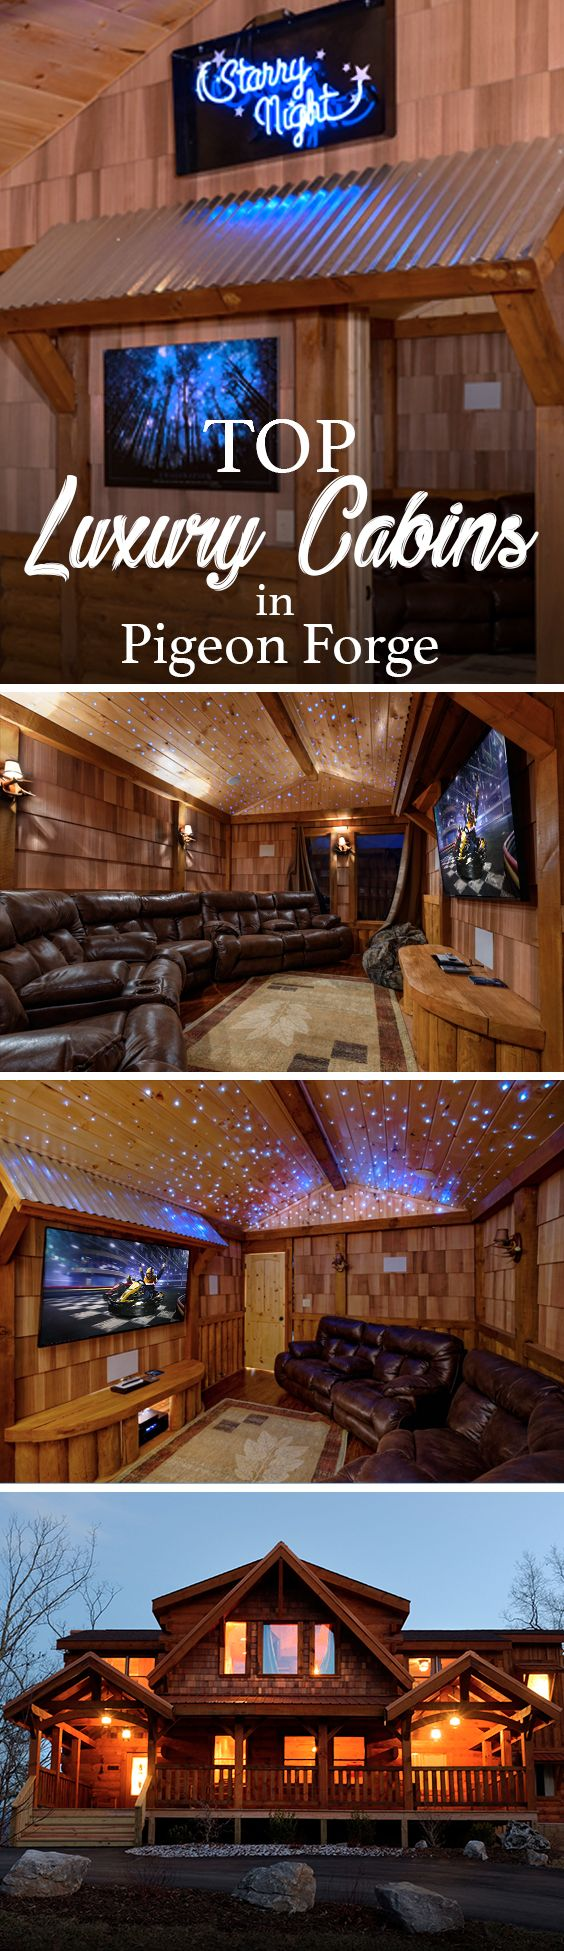 cabin search gatlinburg cabins pin luxury pigeon forge tennessee rentals in